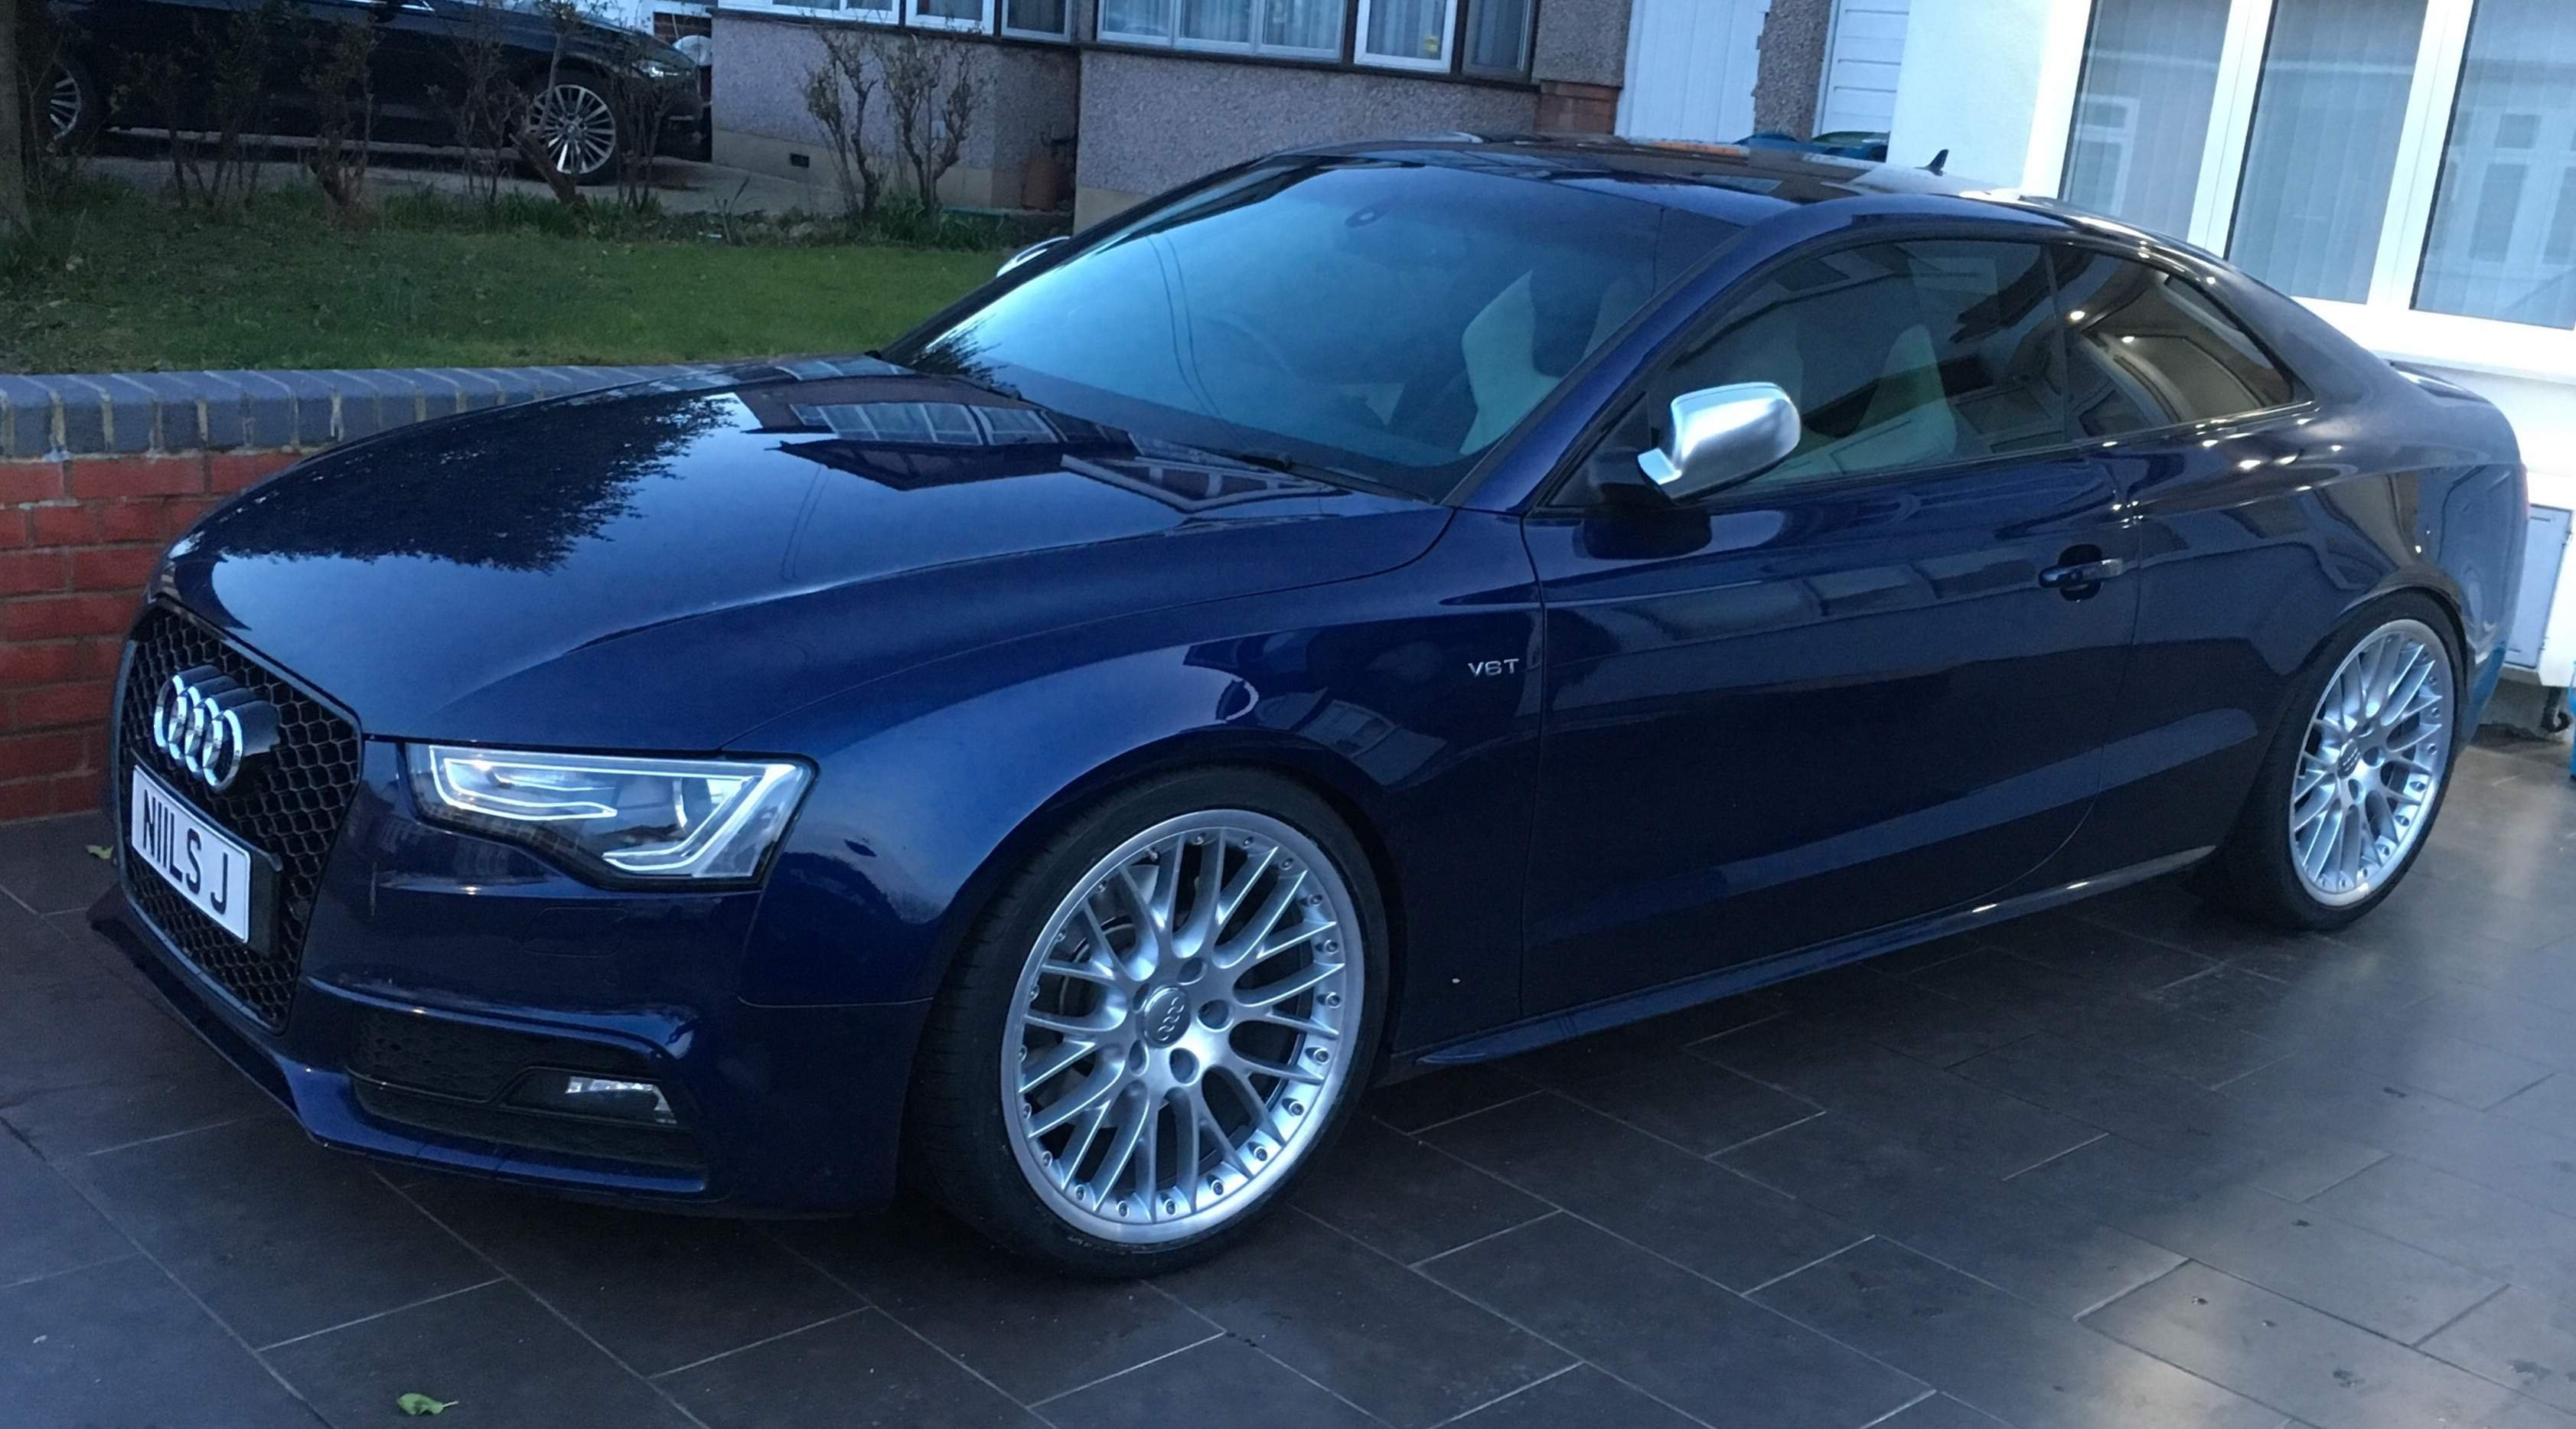 For Sale Bbs Speedline 10x20 And Tyres Audi A5 Forum Audi S5 Forum